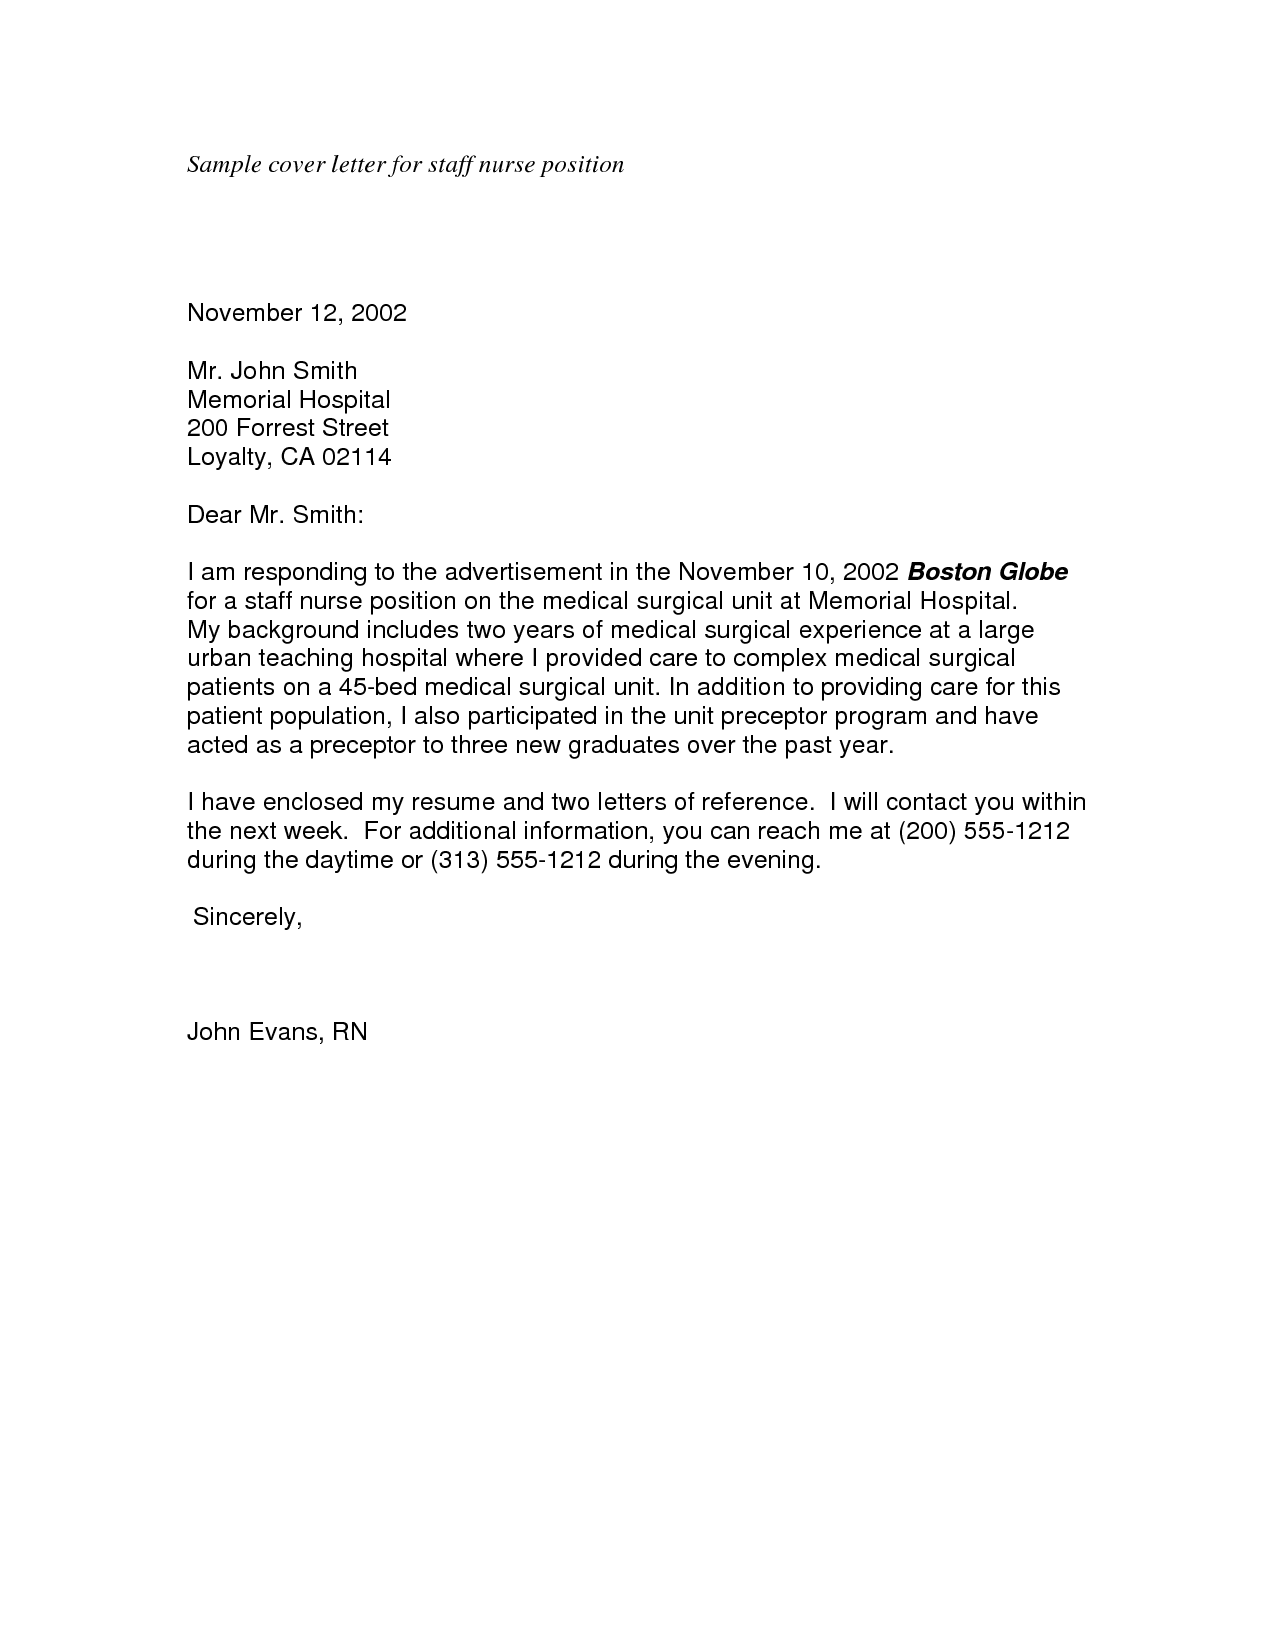 Nursing Cover Letter Samples | Sample Cover Letter For Staff Nurse Position  November Mr